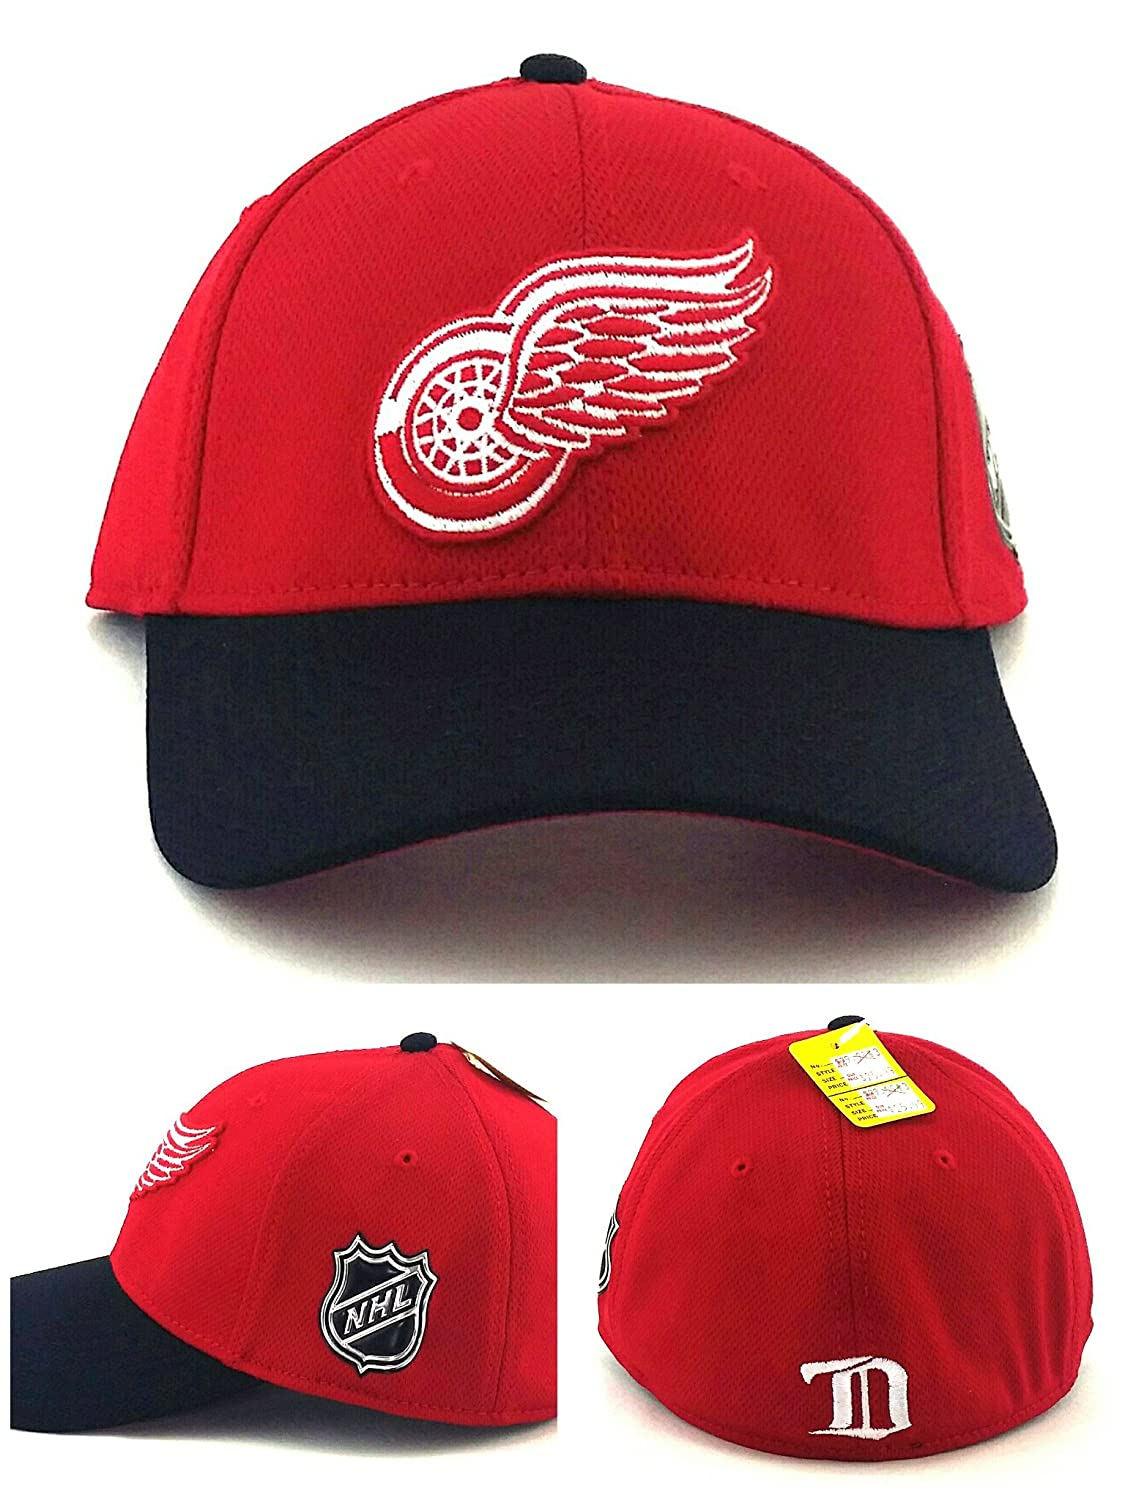 684ea1150dd96 Amazon.com   American Needle Detroit Red Wings New Red Black Dri Tech  Stretch Era Flex Fitted Hat Cap Large L   Sports   Outdoors